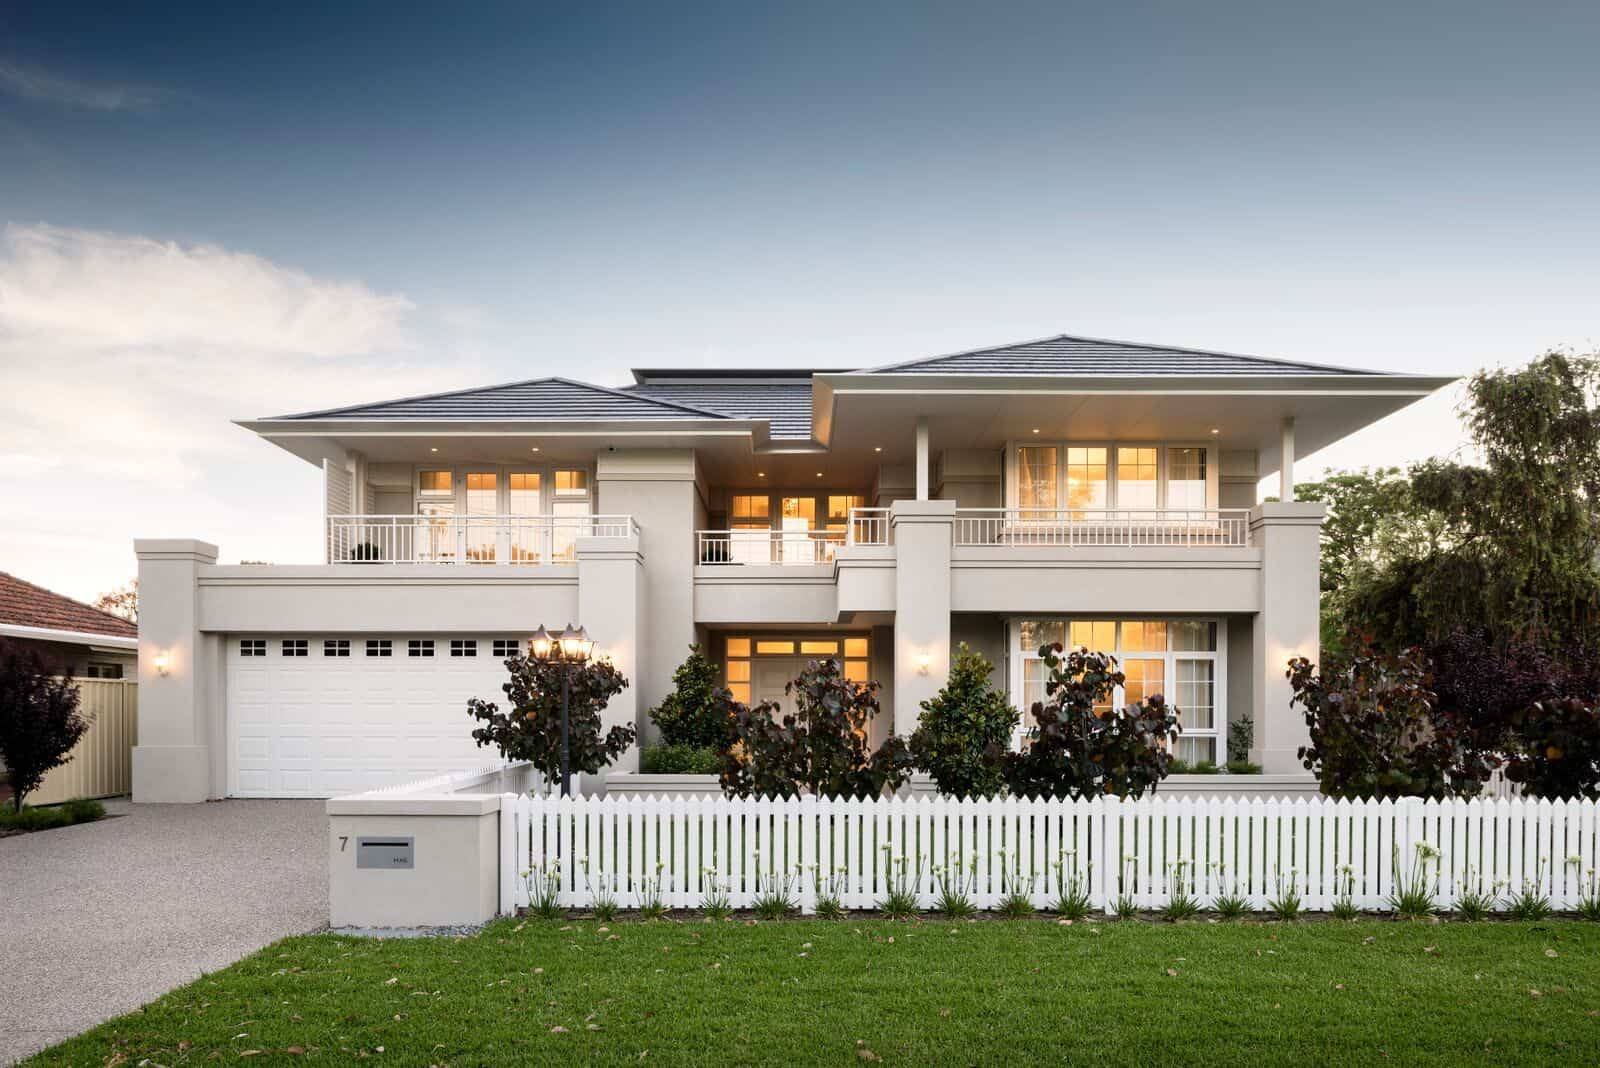 Check Out This Amazing Hamptons Style House In Floreat